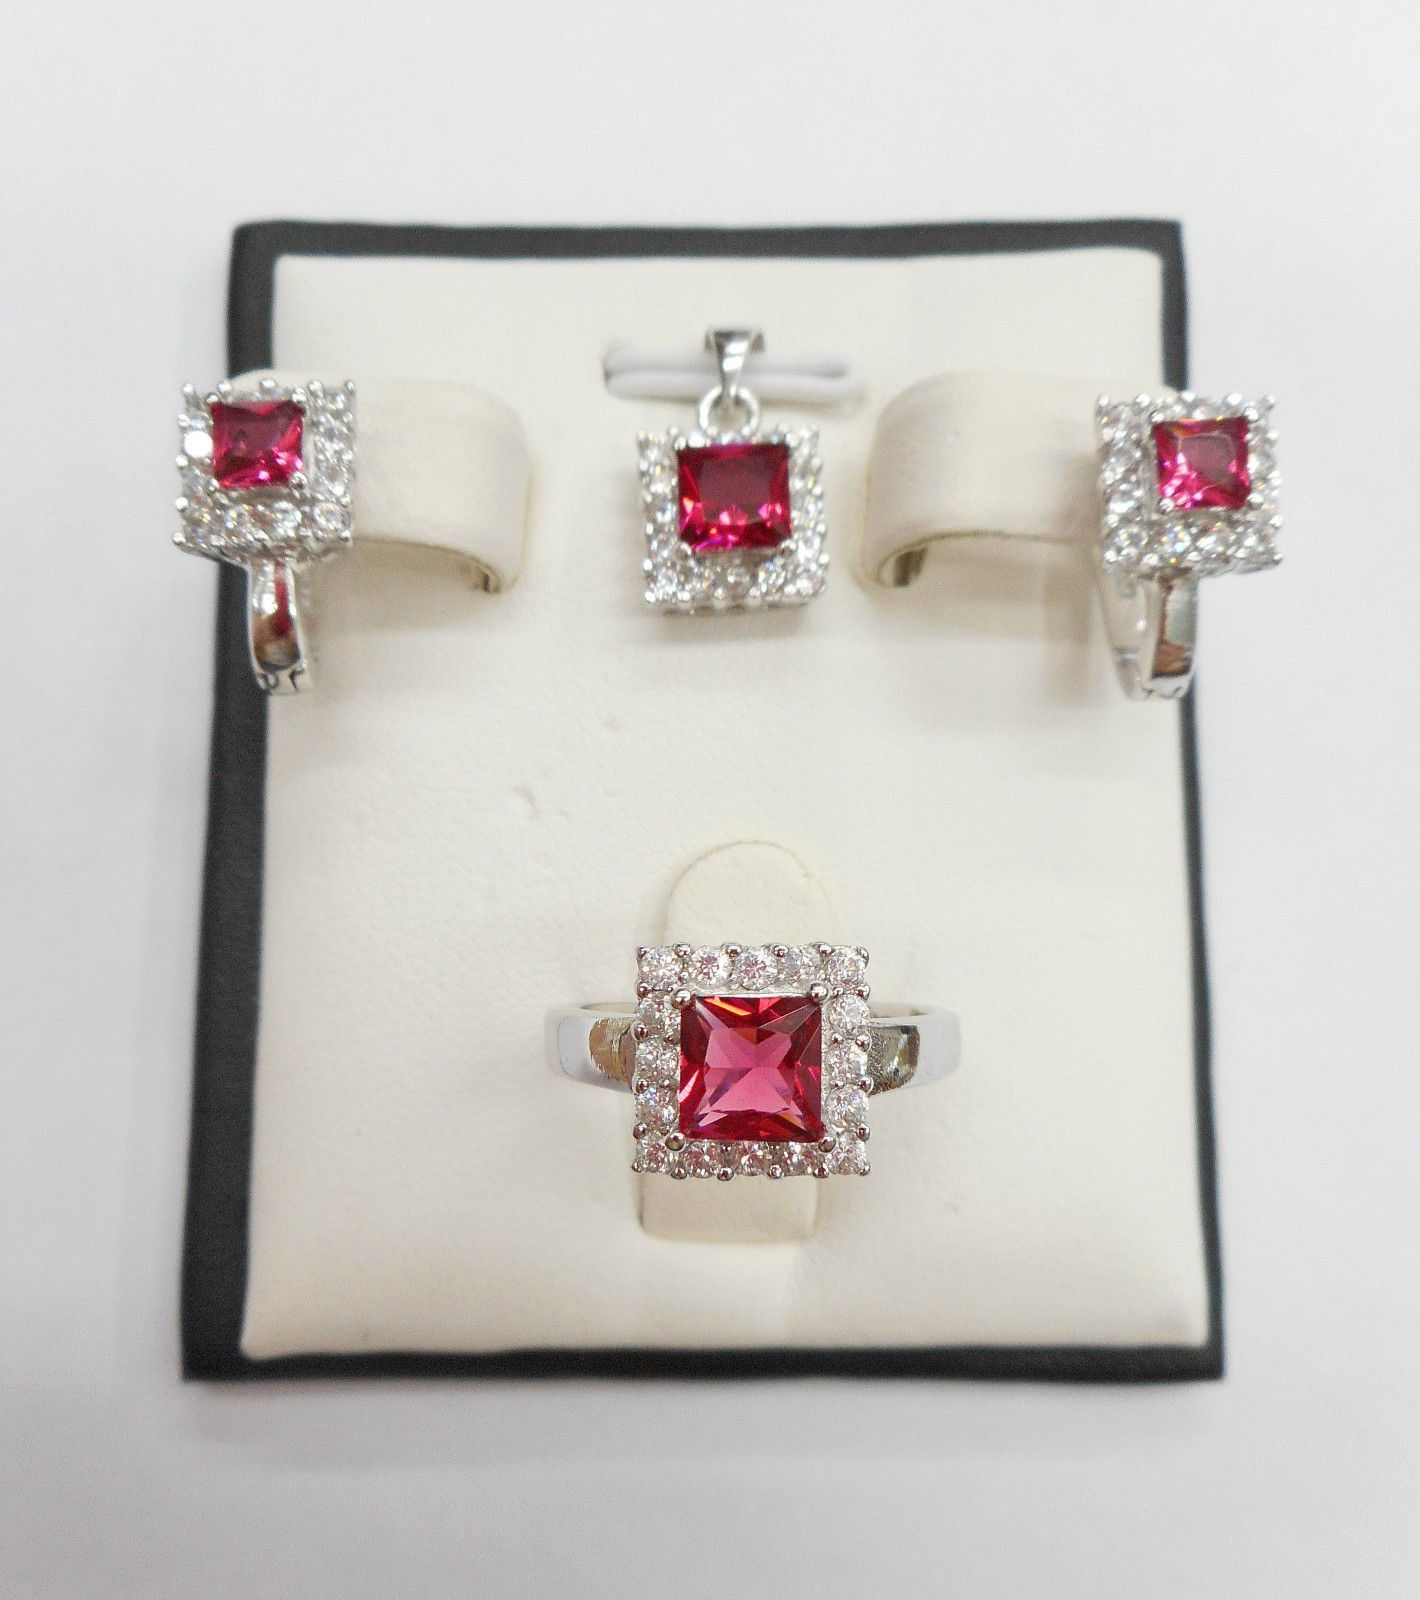 Sterling silver simulated ruby halo cubic zirconia earring pendant